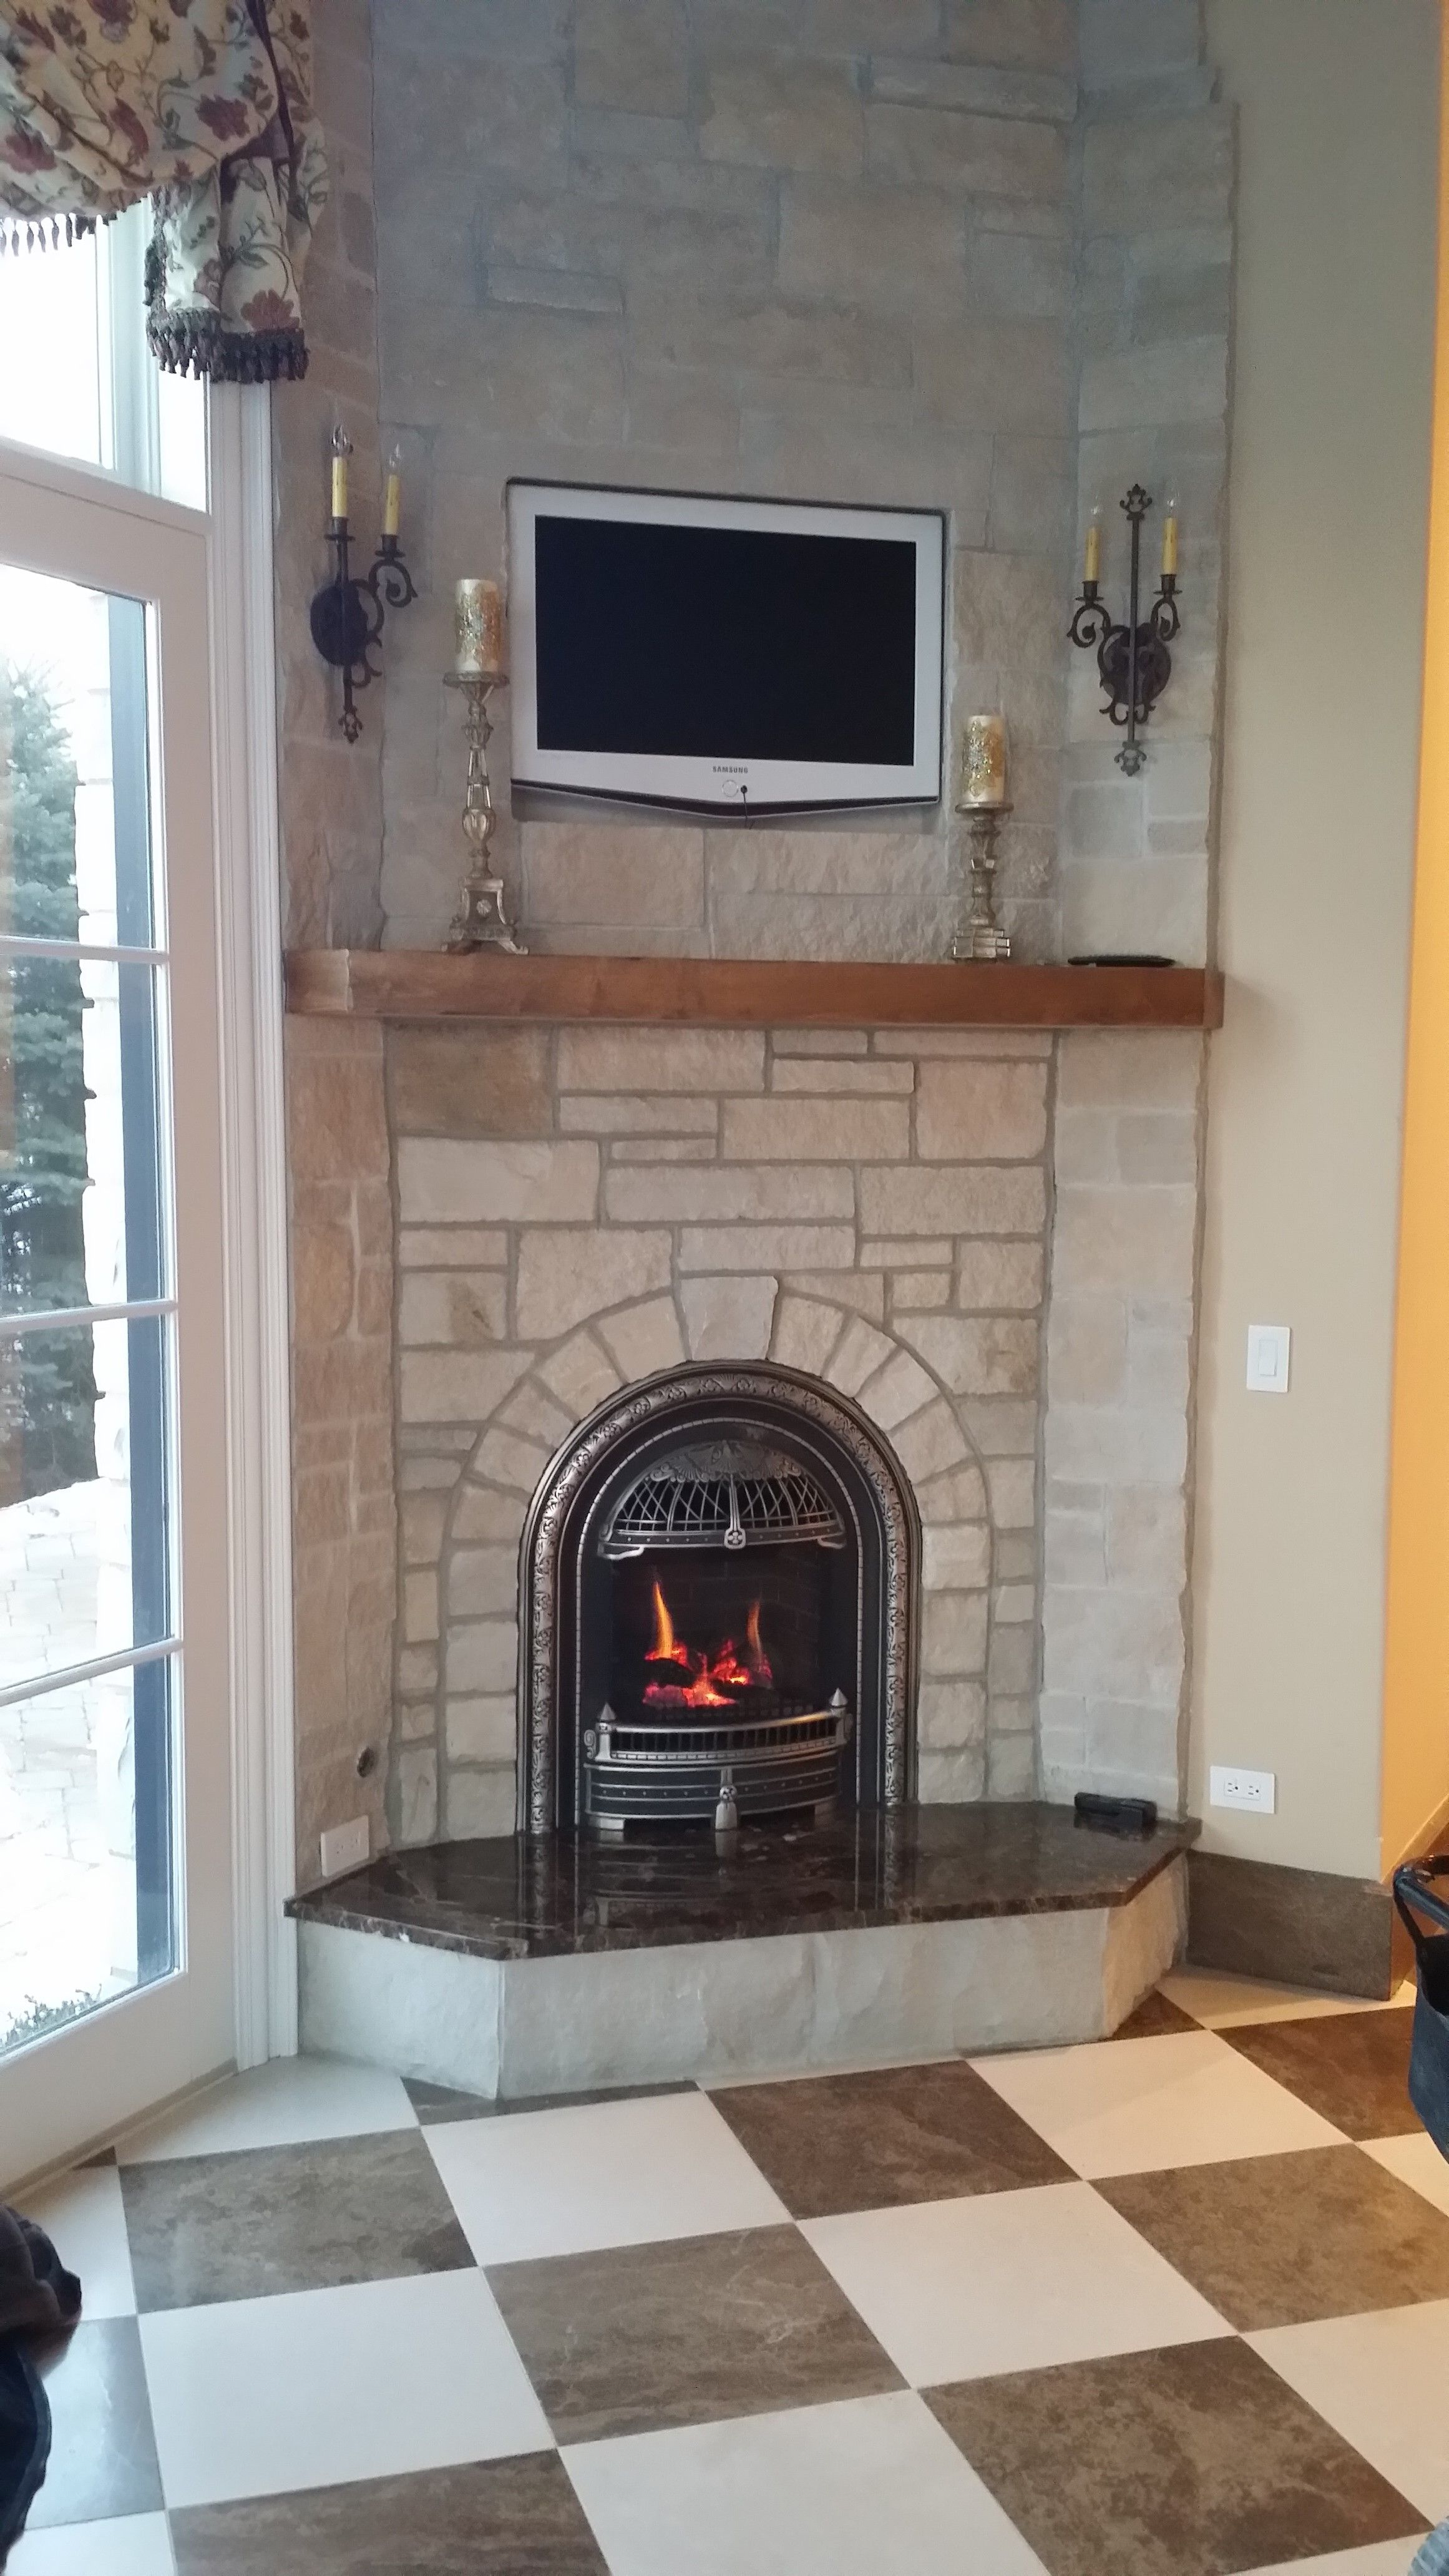 Valor 530iln Log Fire Radiant Gas Fireplace And Insert